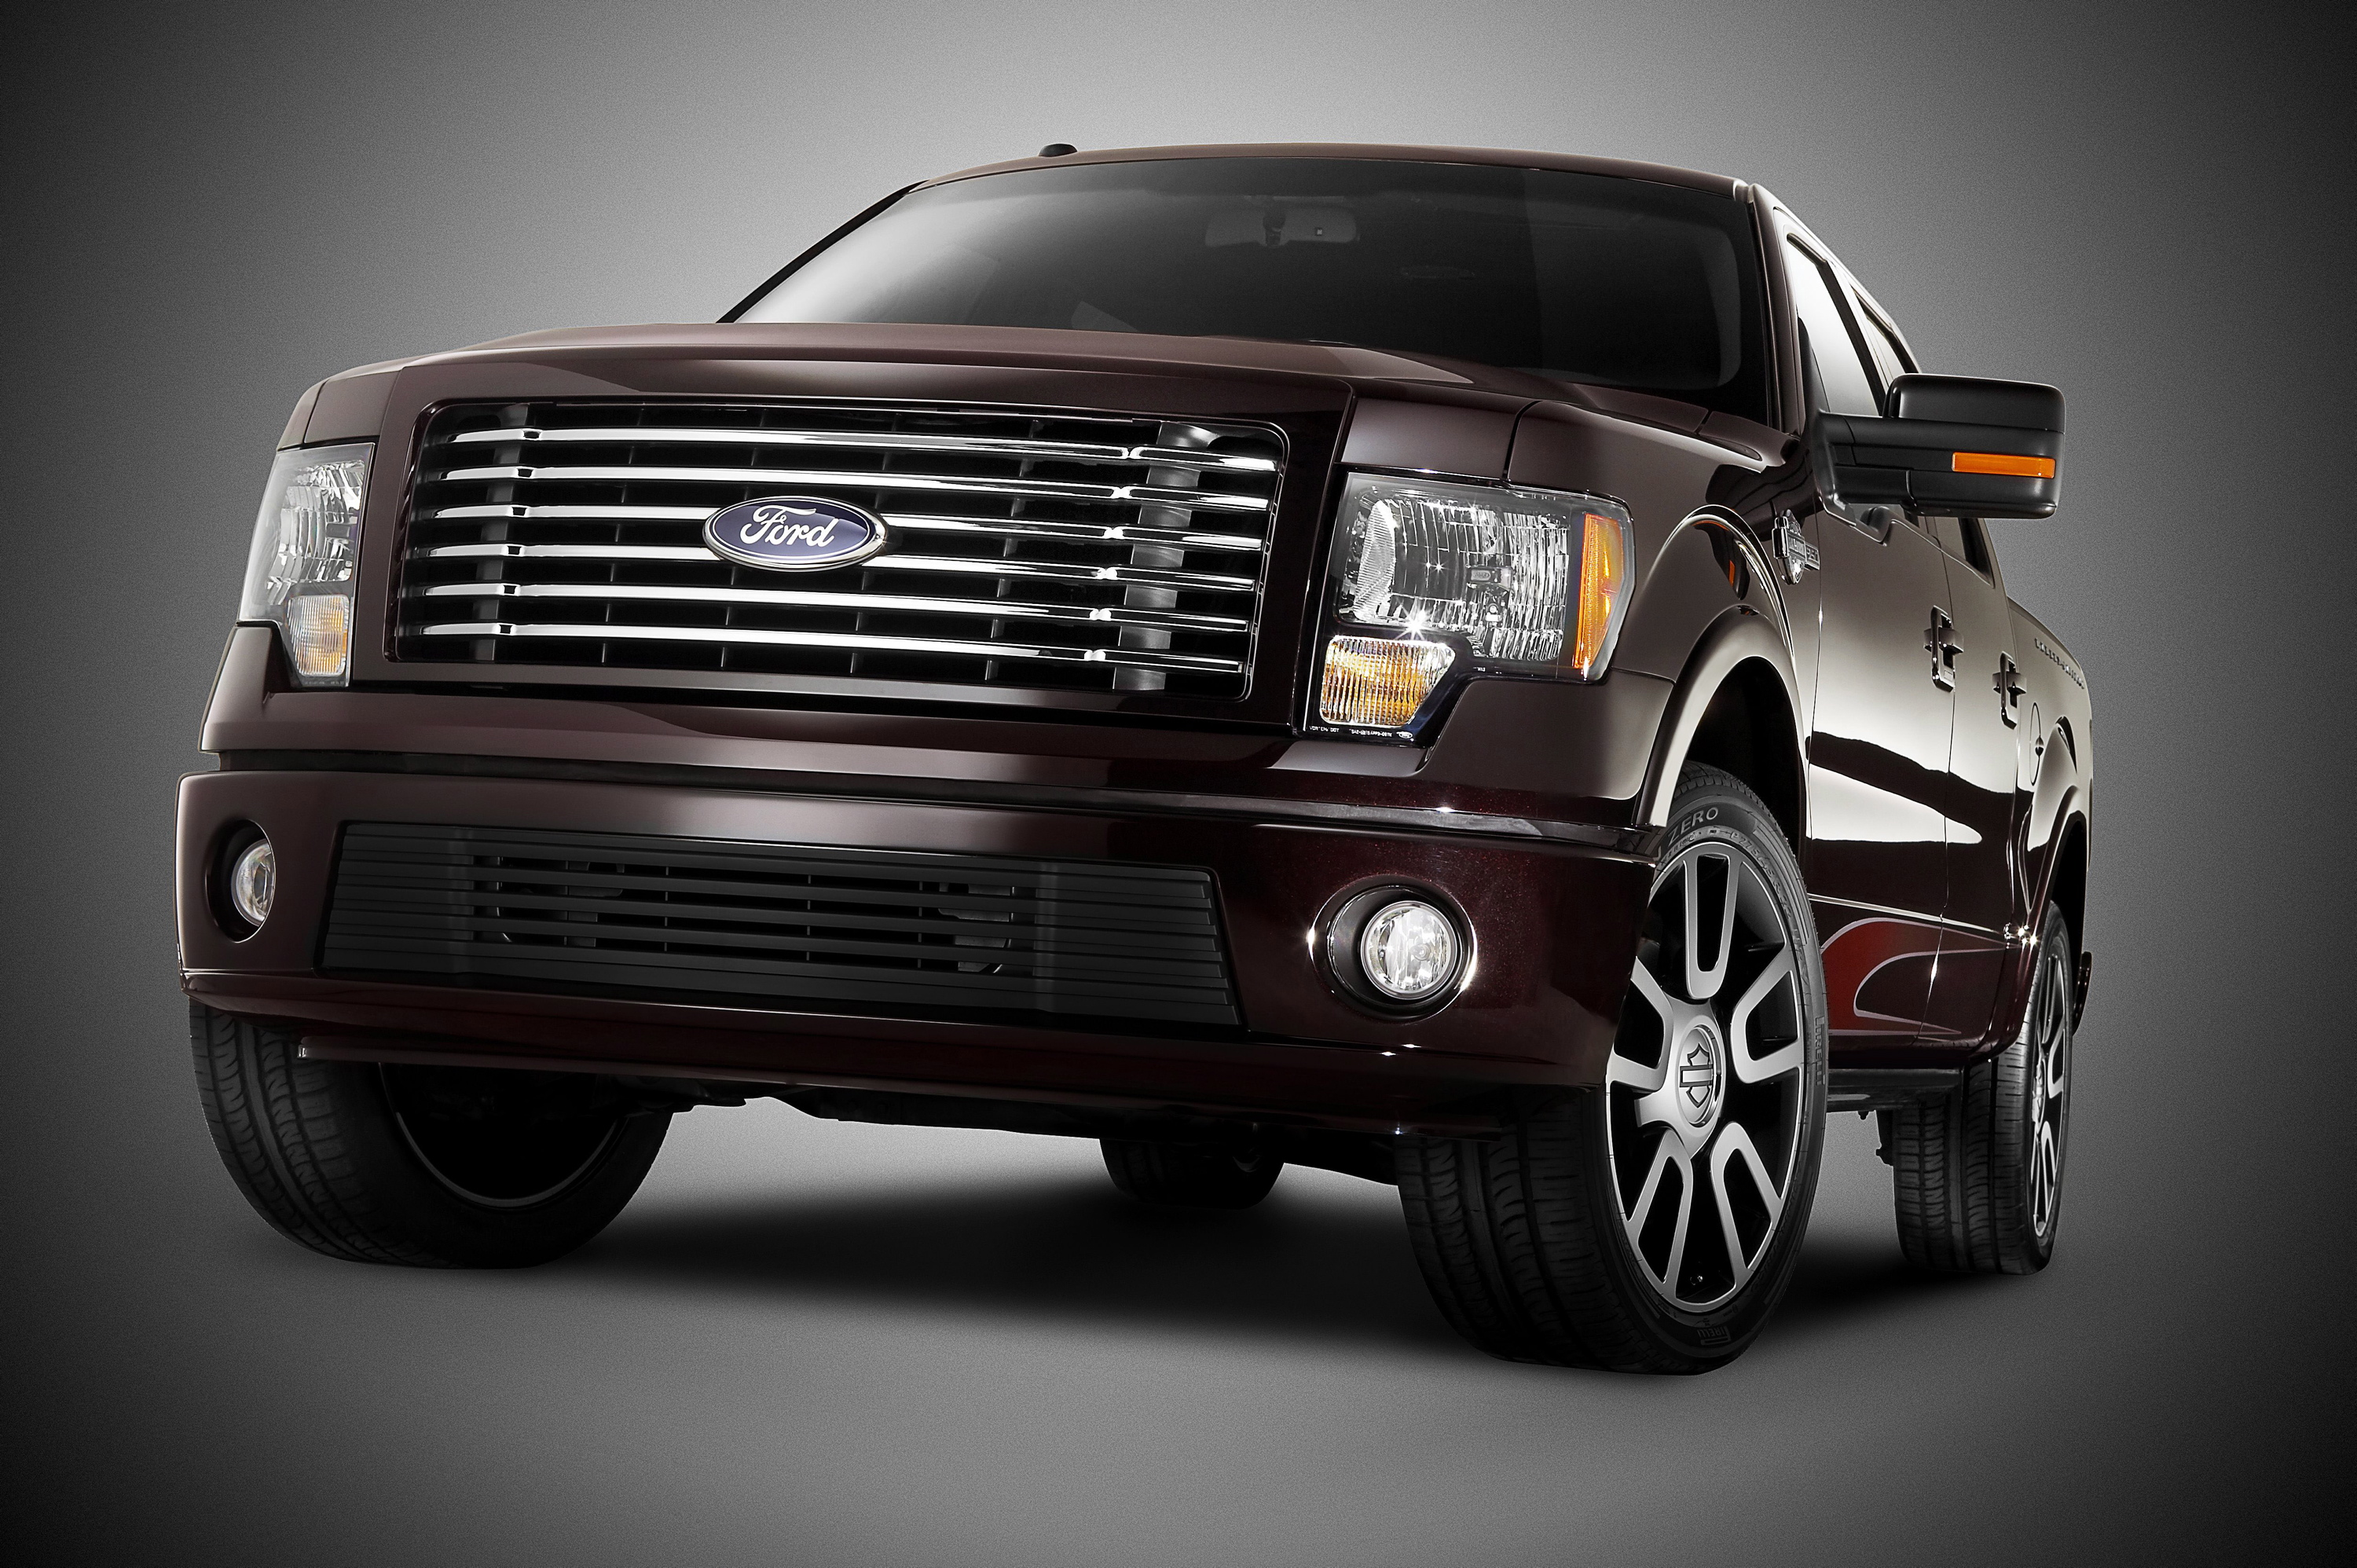 2010 ford f-150 harley: black is back (and red, too)